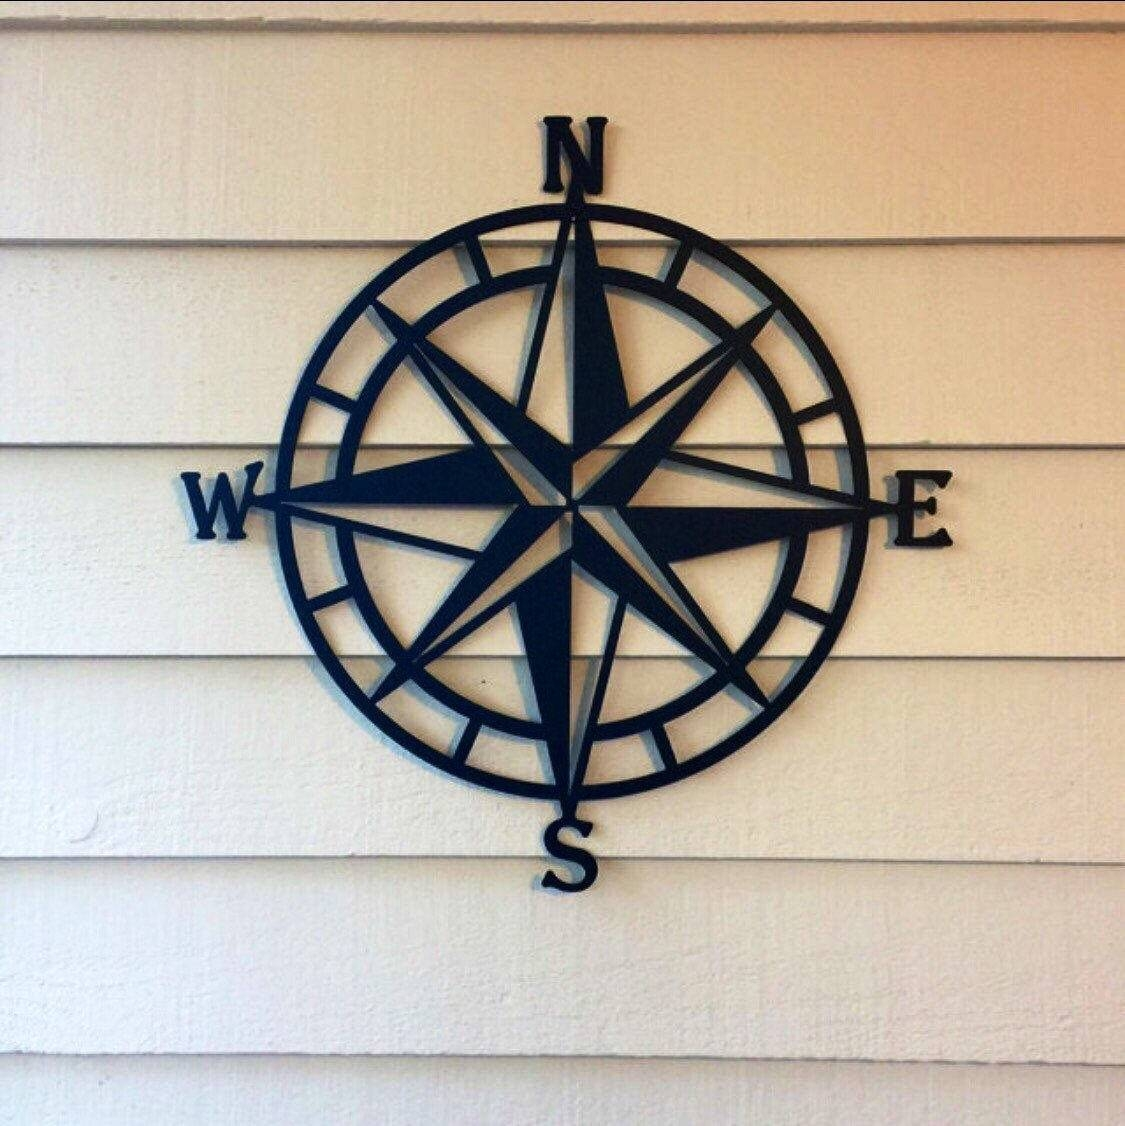 Metal Wall Art Decor | Roselawnlutheran Intended For Best And Newest Beach Metal Wall Art (View 11 of 20)